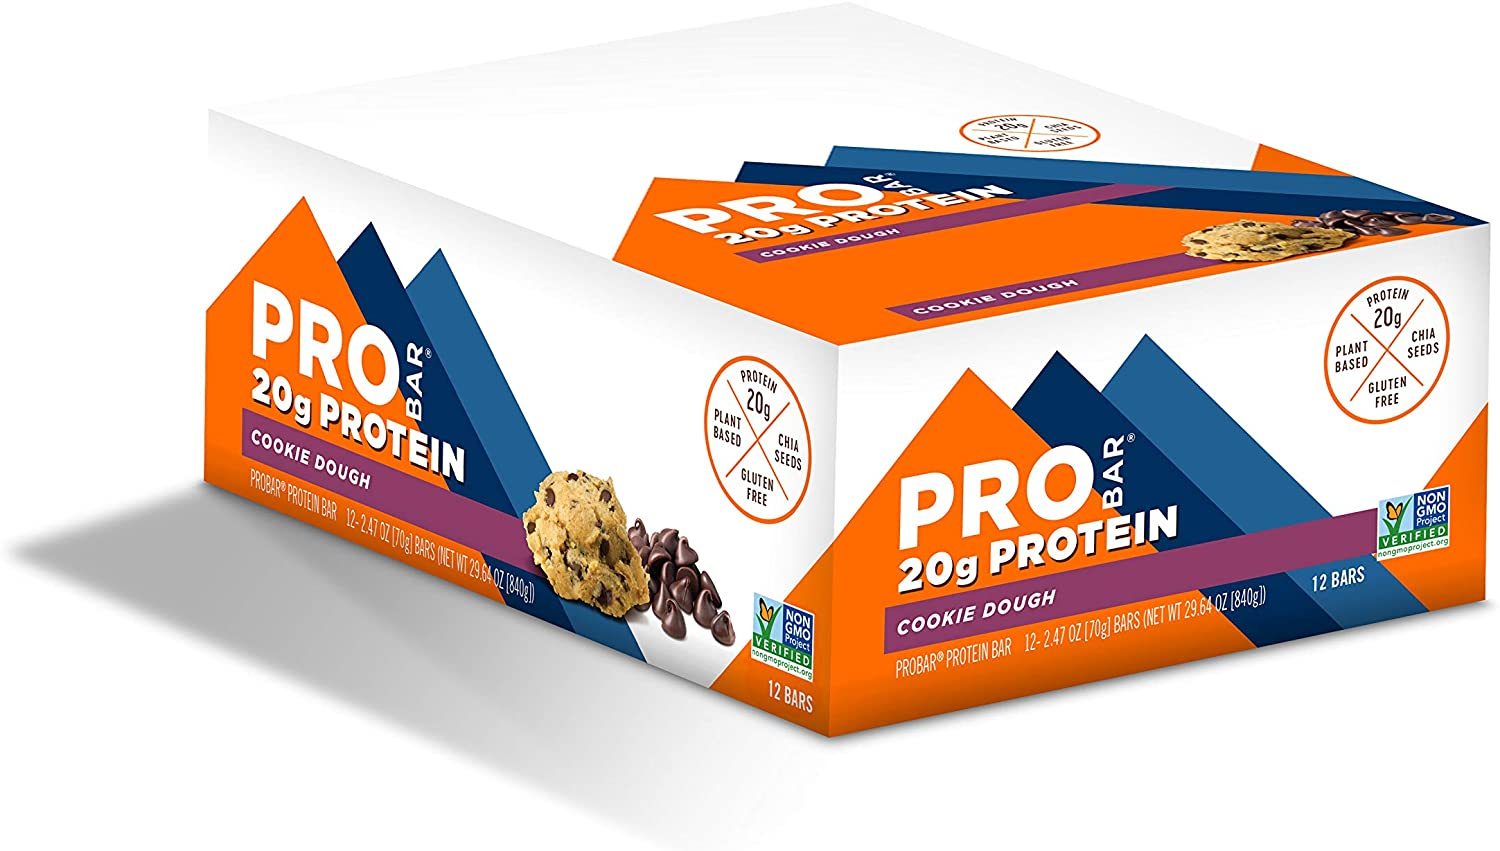 PROBAR - Base Protein Bar, Cookie Dough, Non-GMO, Gluten-Free, Healthy, Plant-Based Whole Food Ingredients, Natural Energy (12 Count)